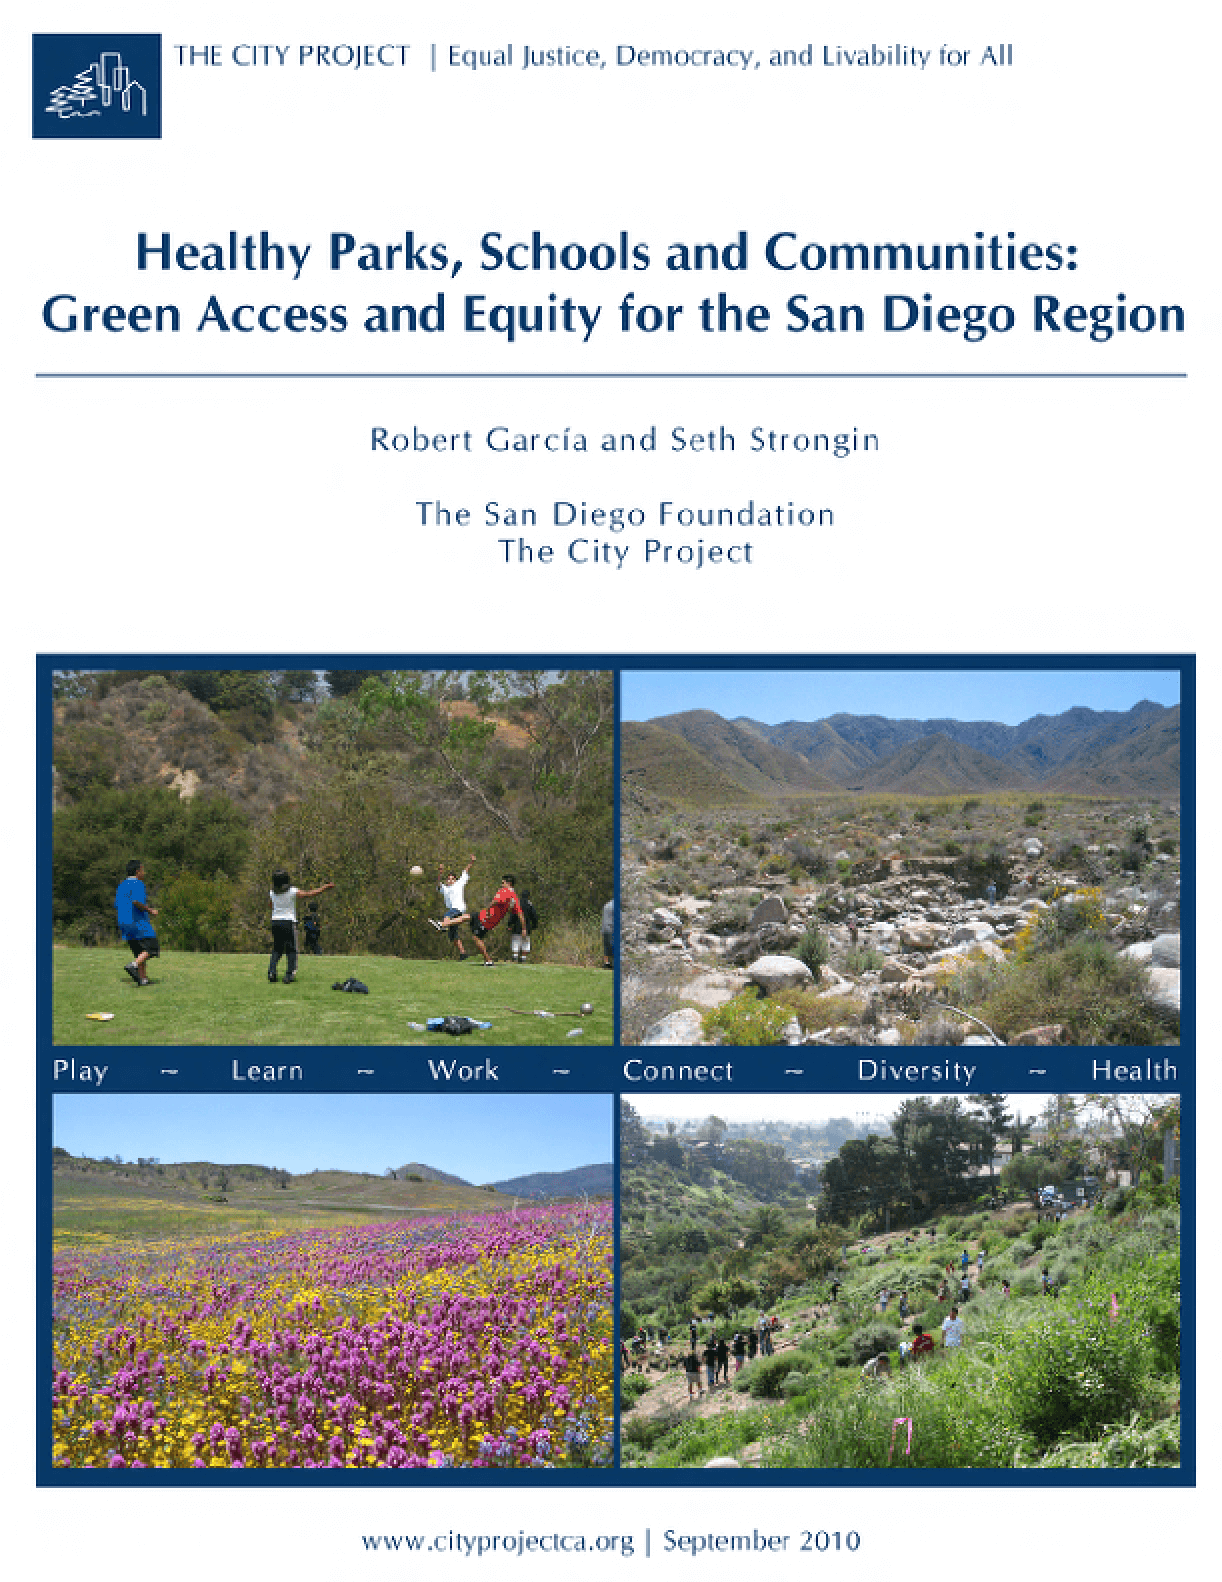 Green Access and Equity for the San Diego Region